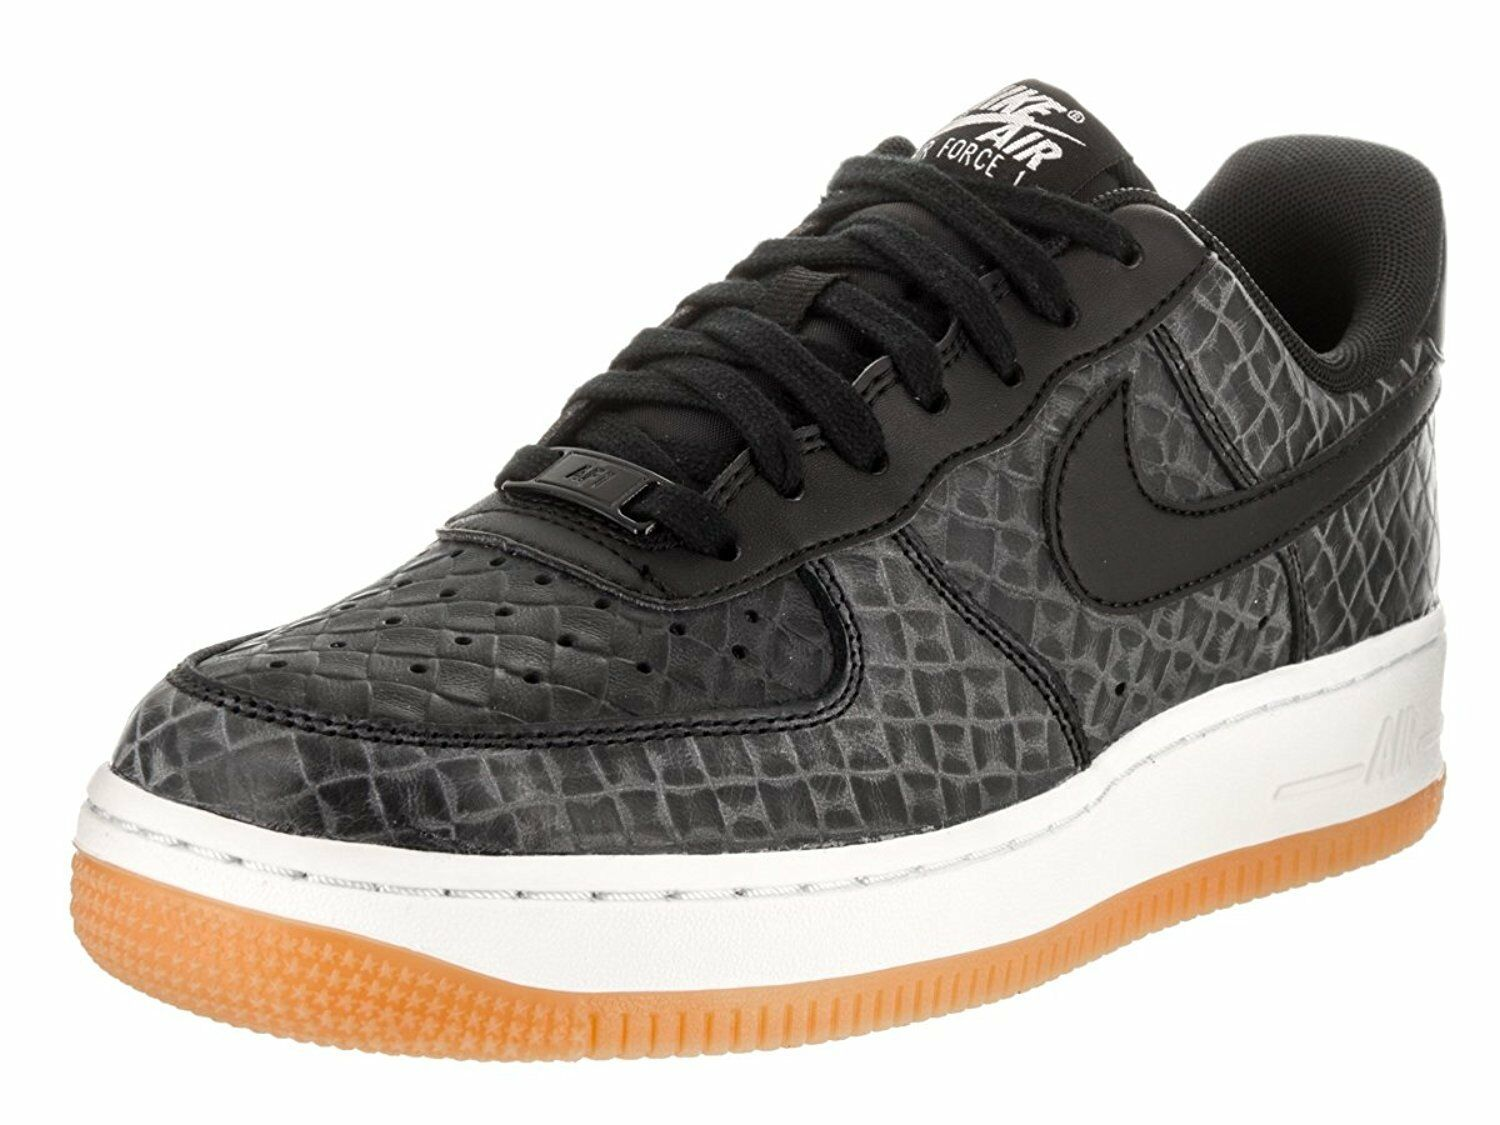 c16154faf0ae1 Women s Nike Air Air Air Force 1  07 PRM Basketball Shoe